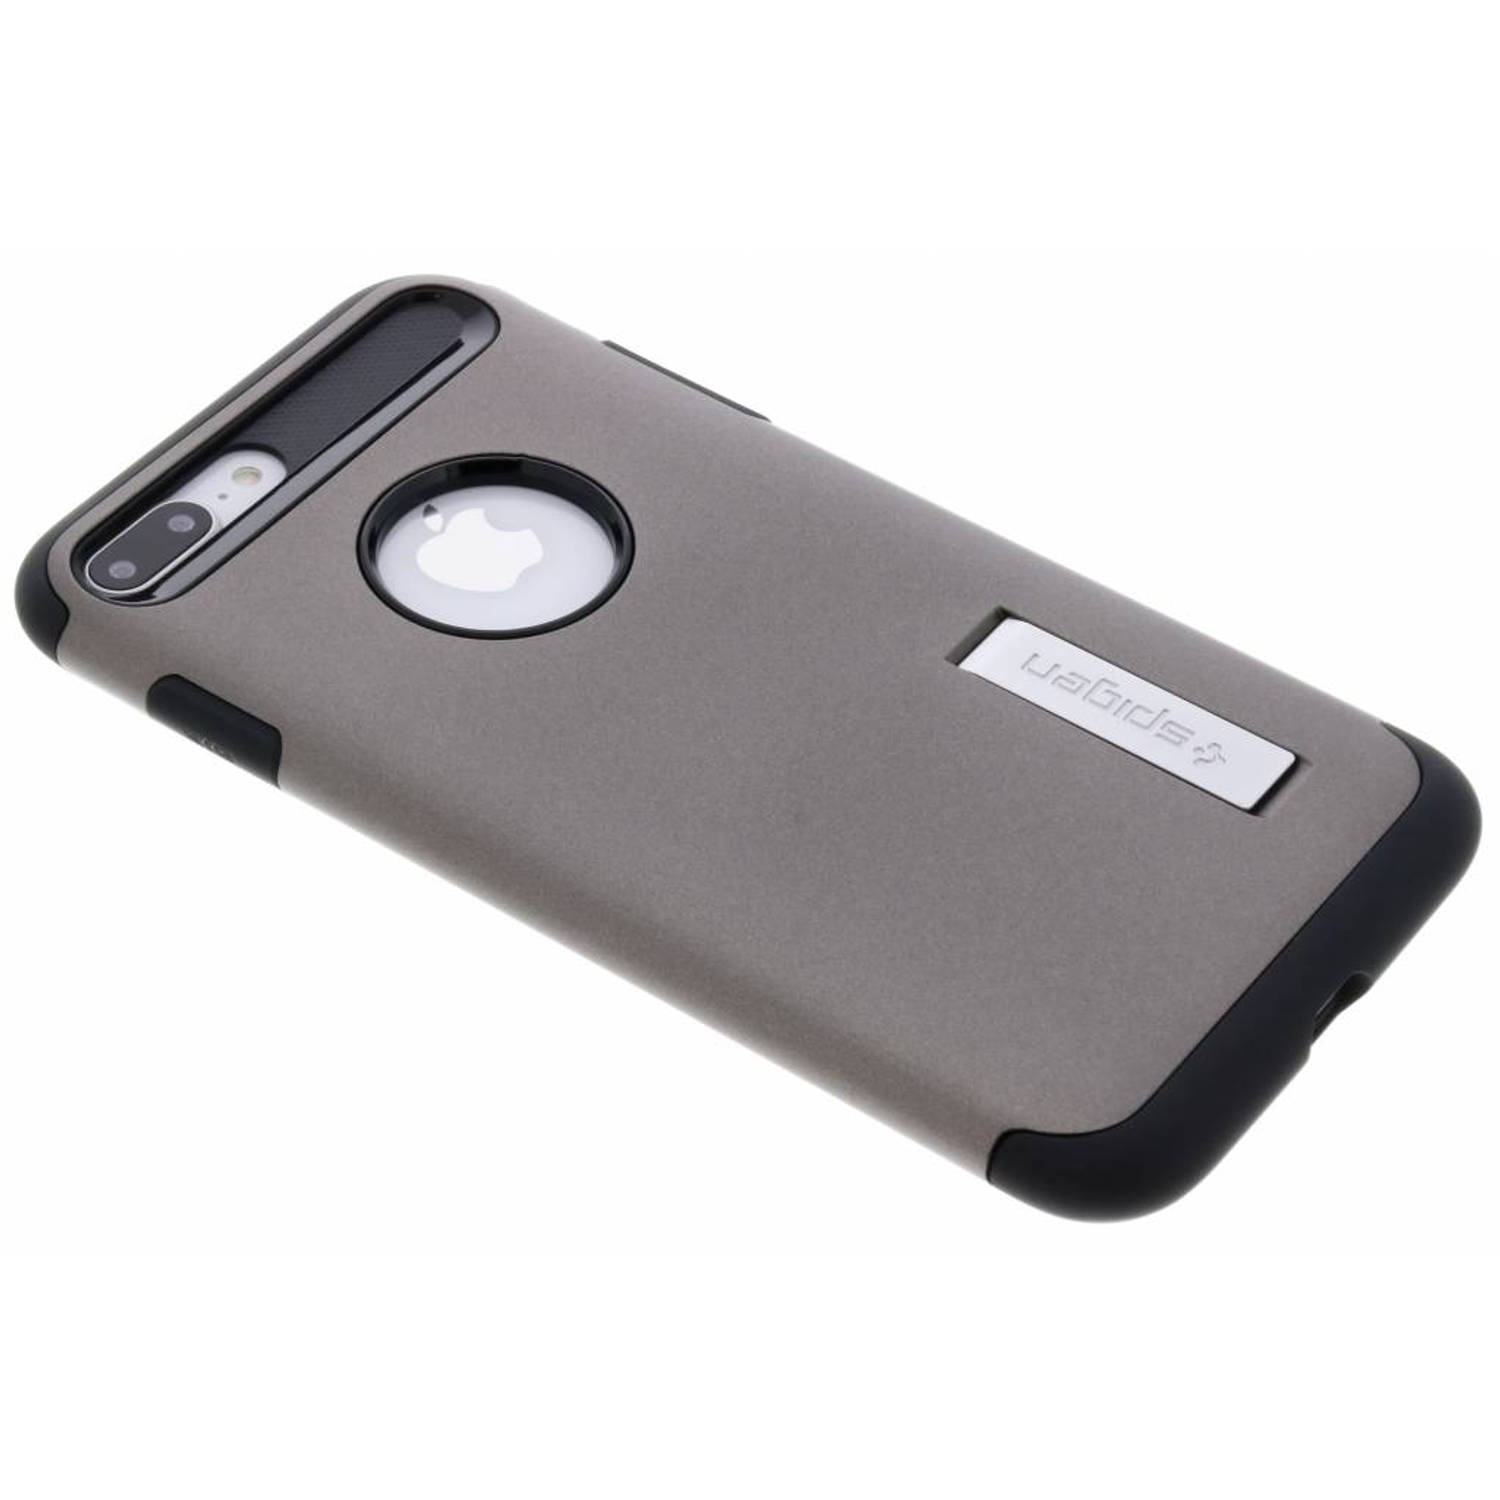 Grijze Slim Armor Case voor de iPhone 8 Plus / 7 Plus